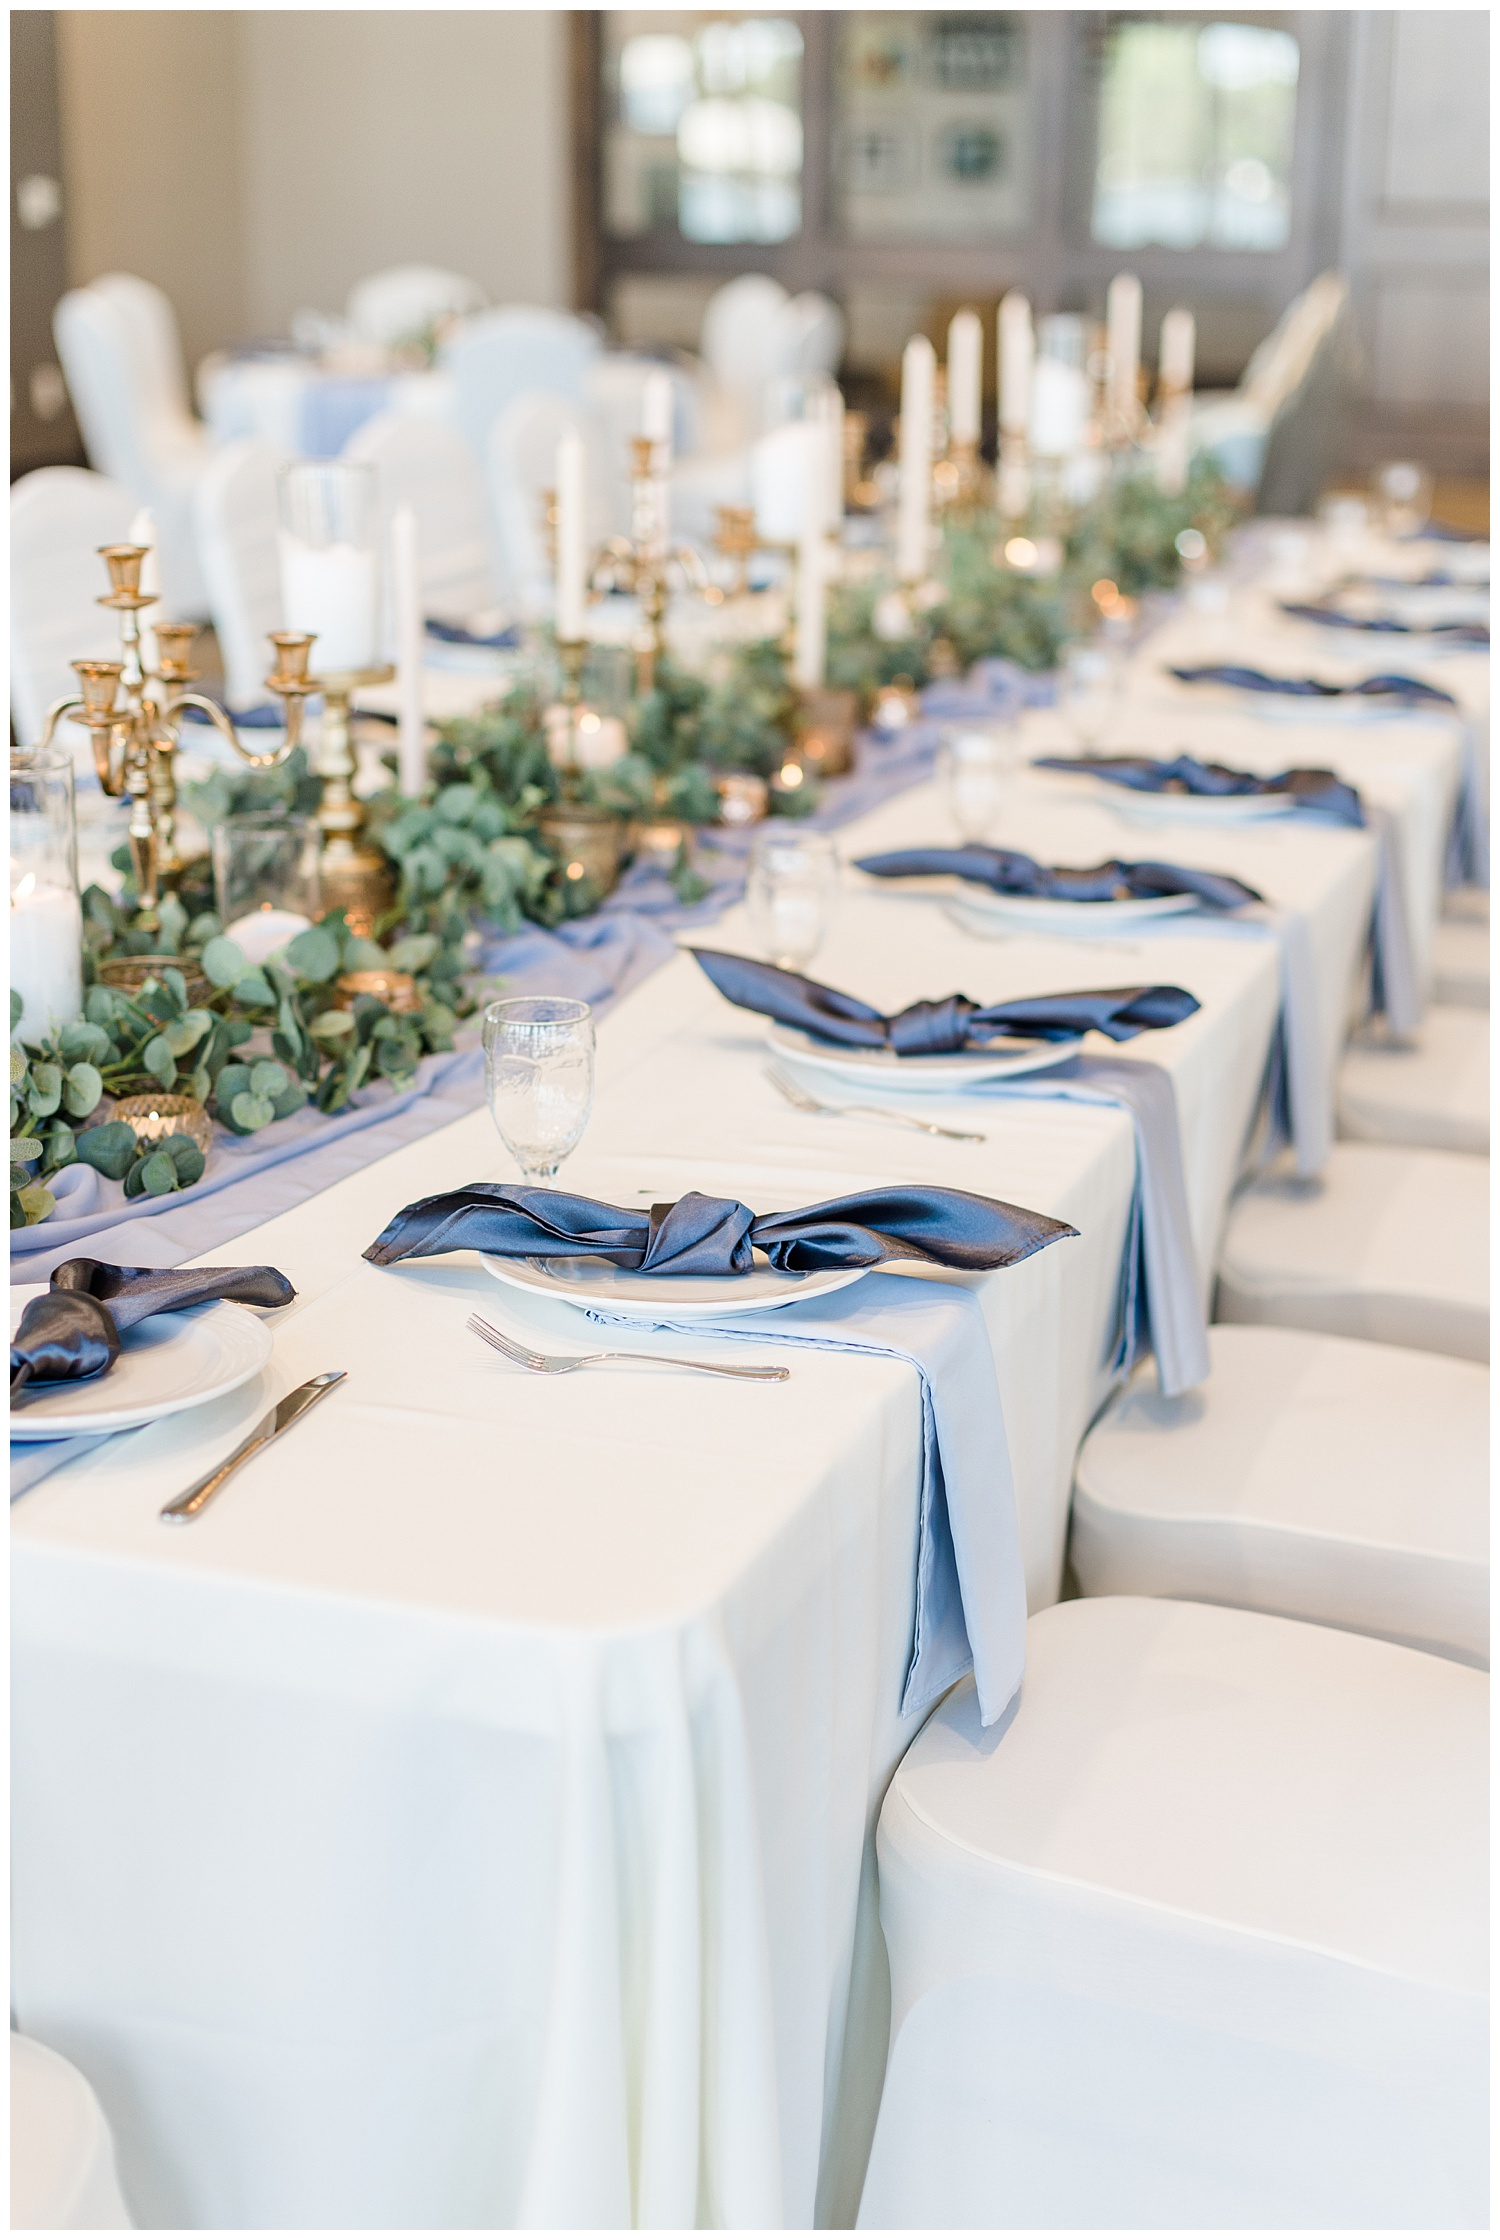 Dusty blue and peach kings wedding table topped with gold vintage candlesticks, eucalyptus and knotted napkins at the Shores at Five Island | CB Studio